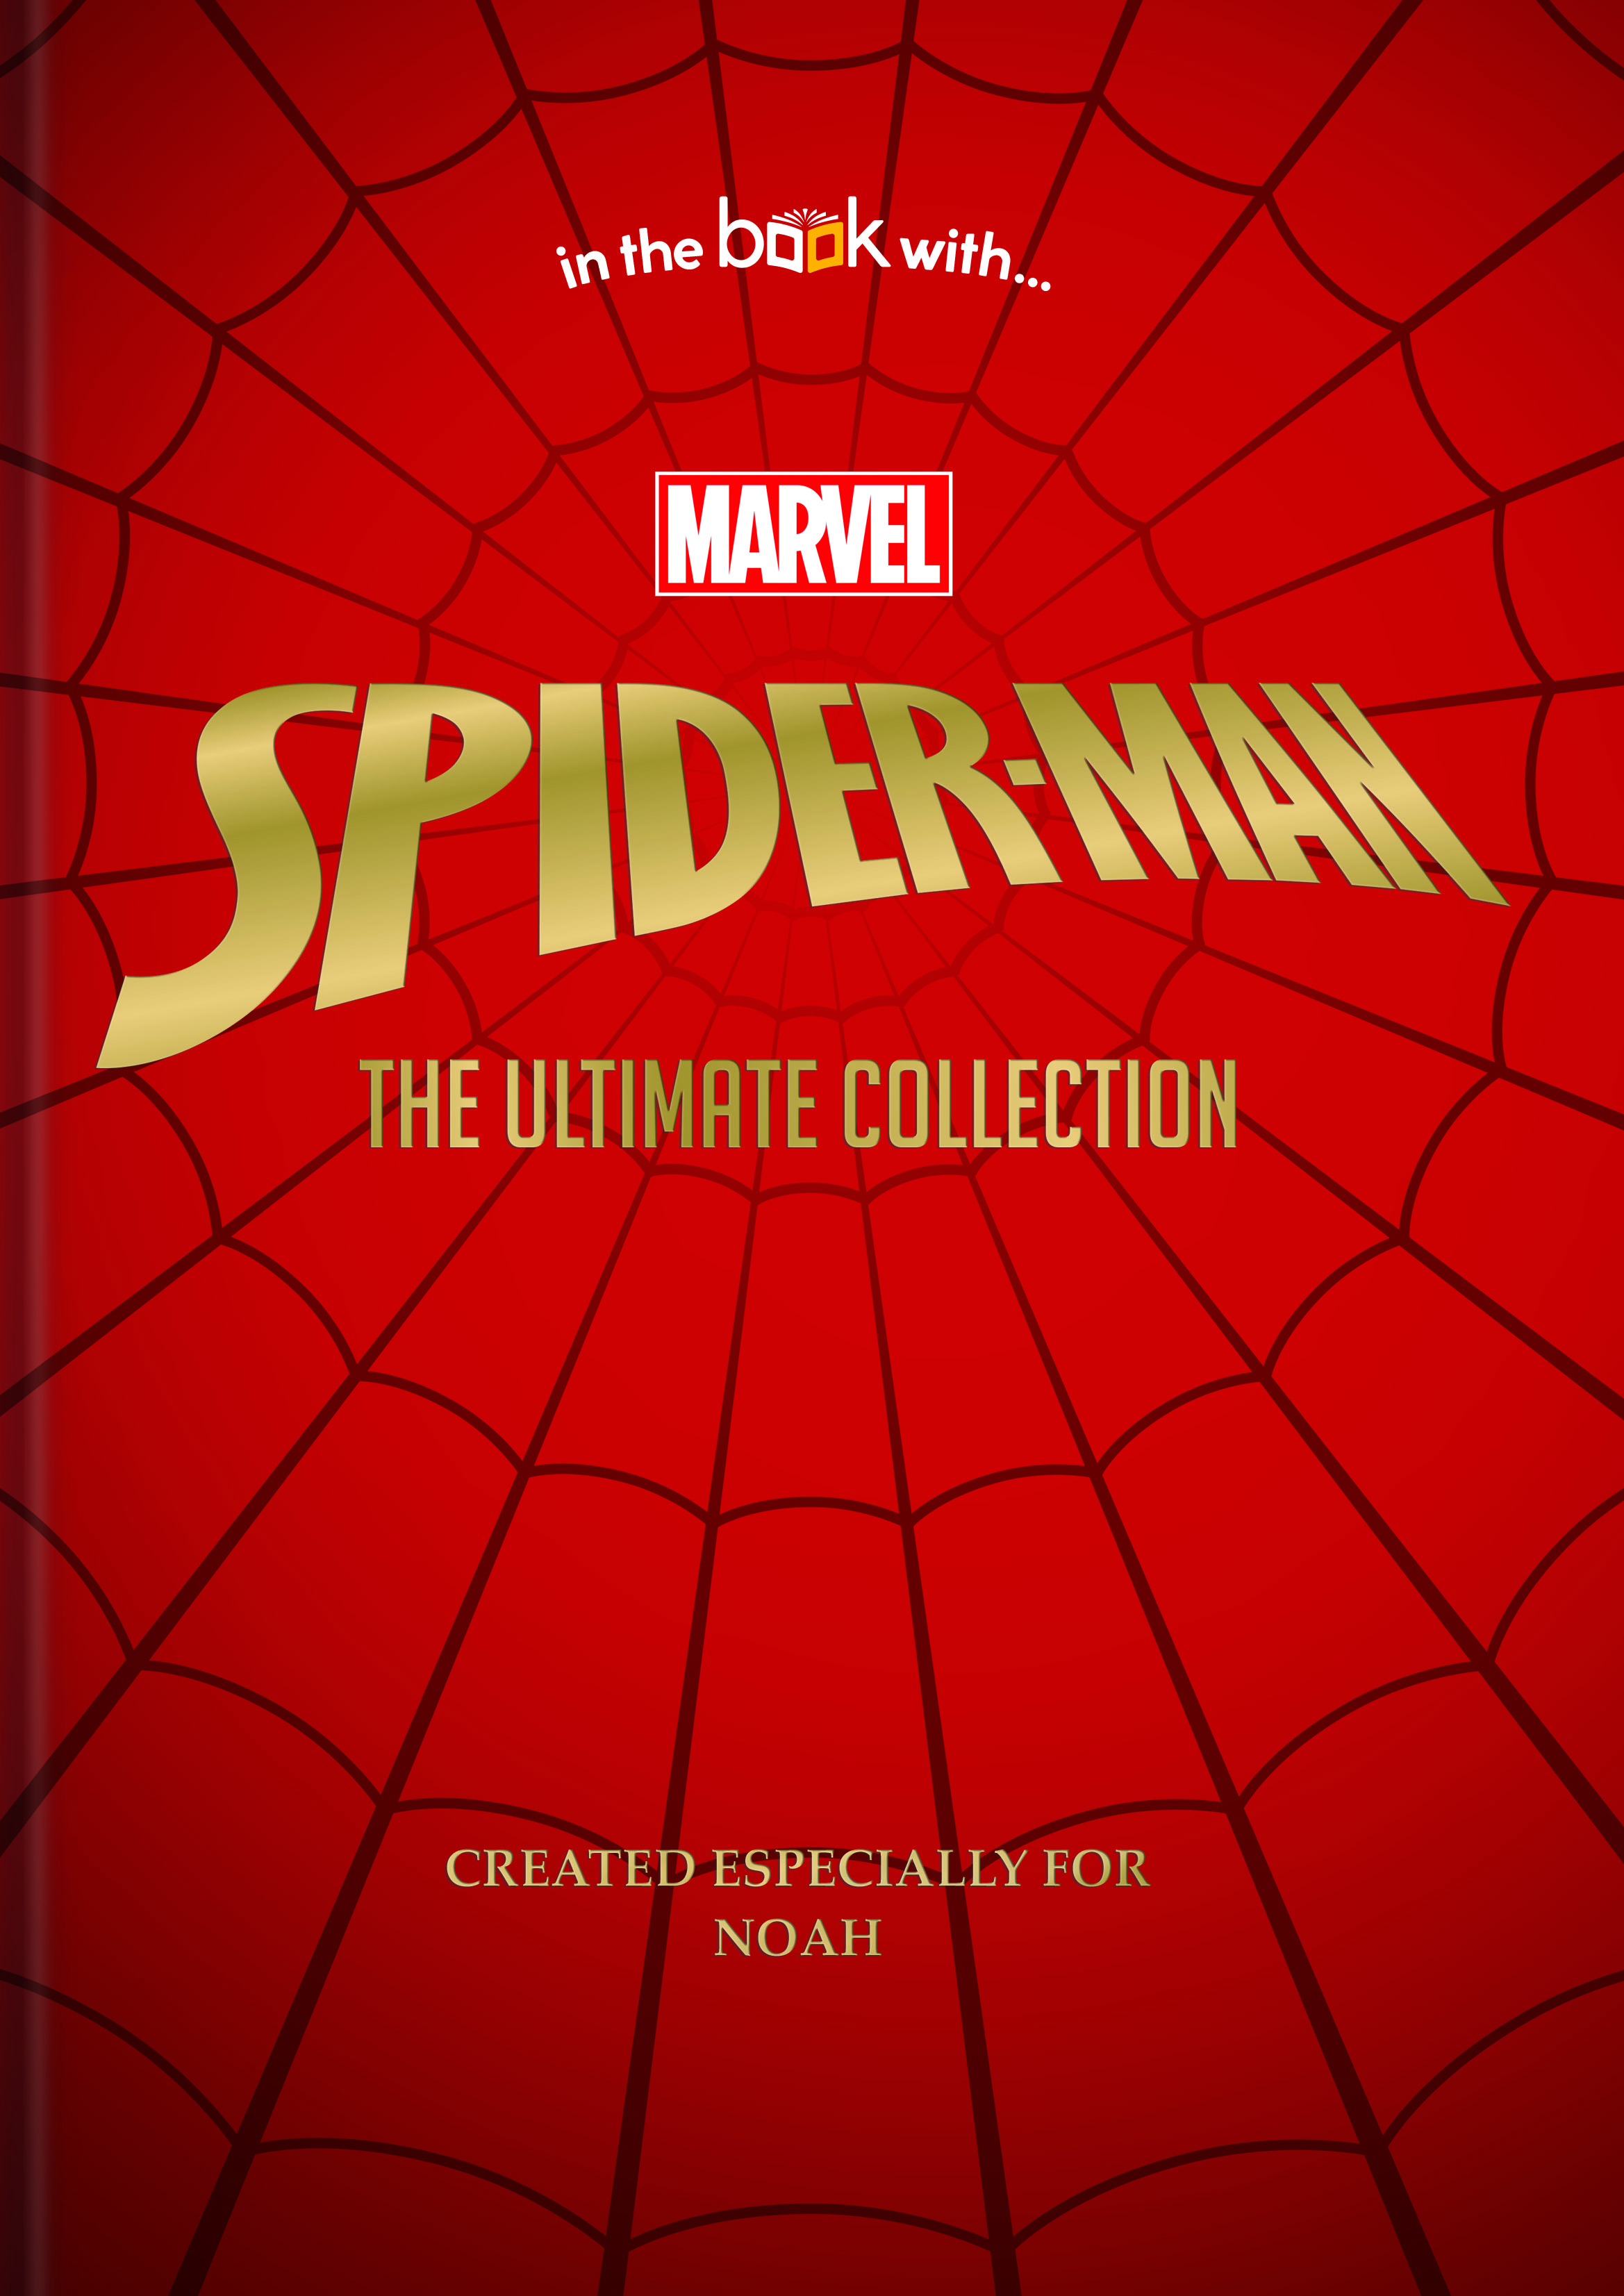 spiderman collection cover